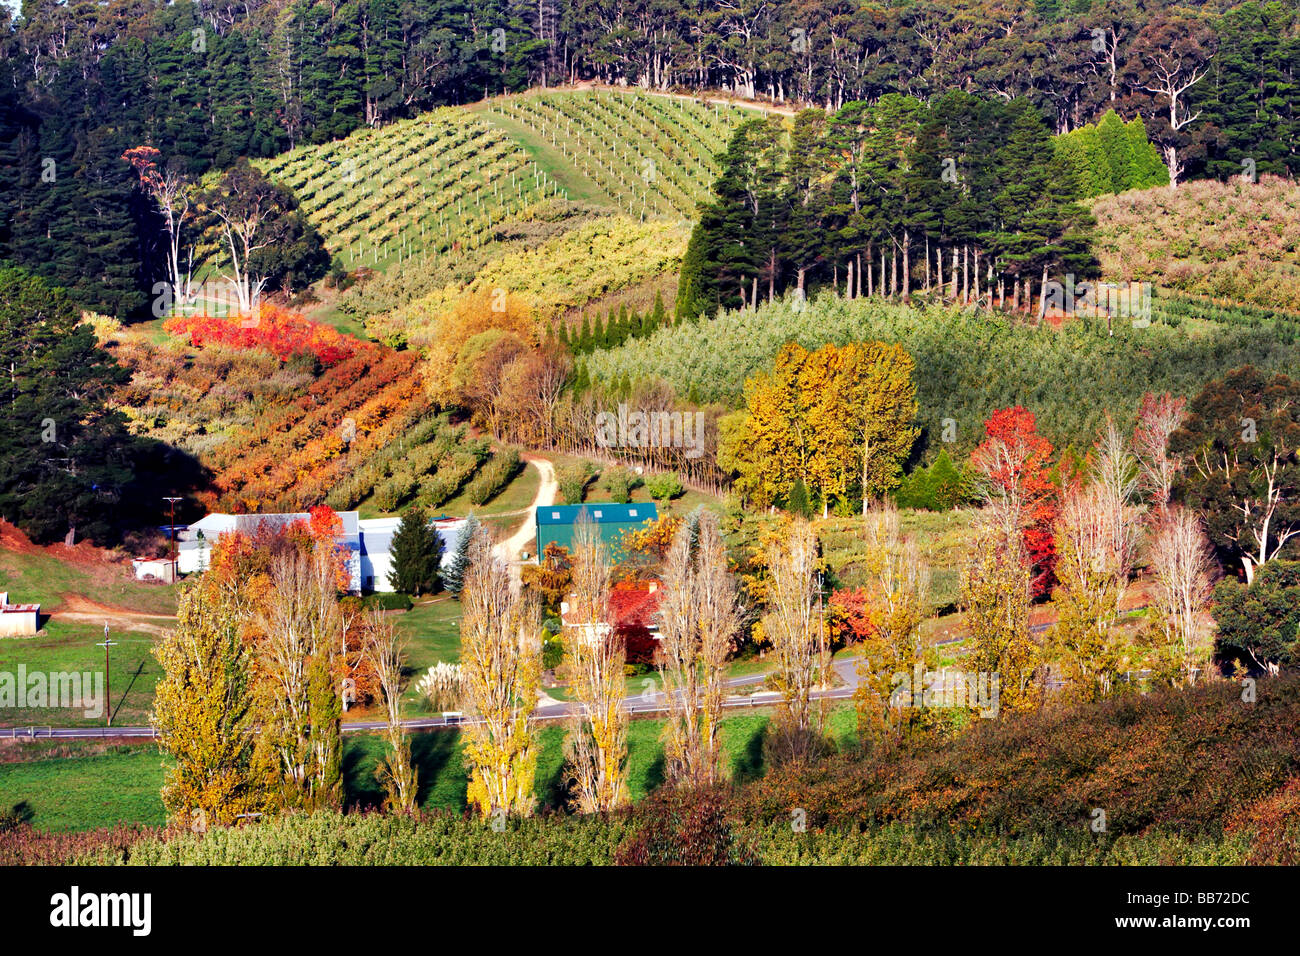 Vineyards at Forest Range in the Mount Lofty Ranges South Australia Stock Photo